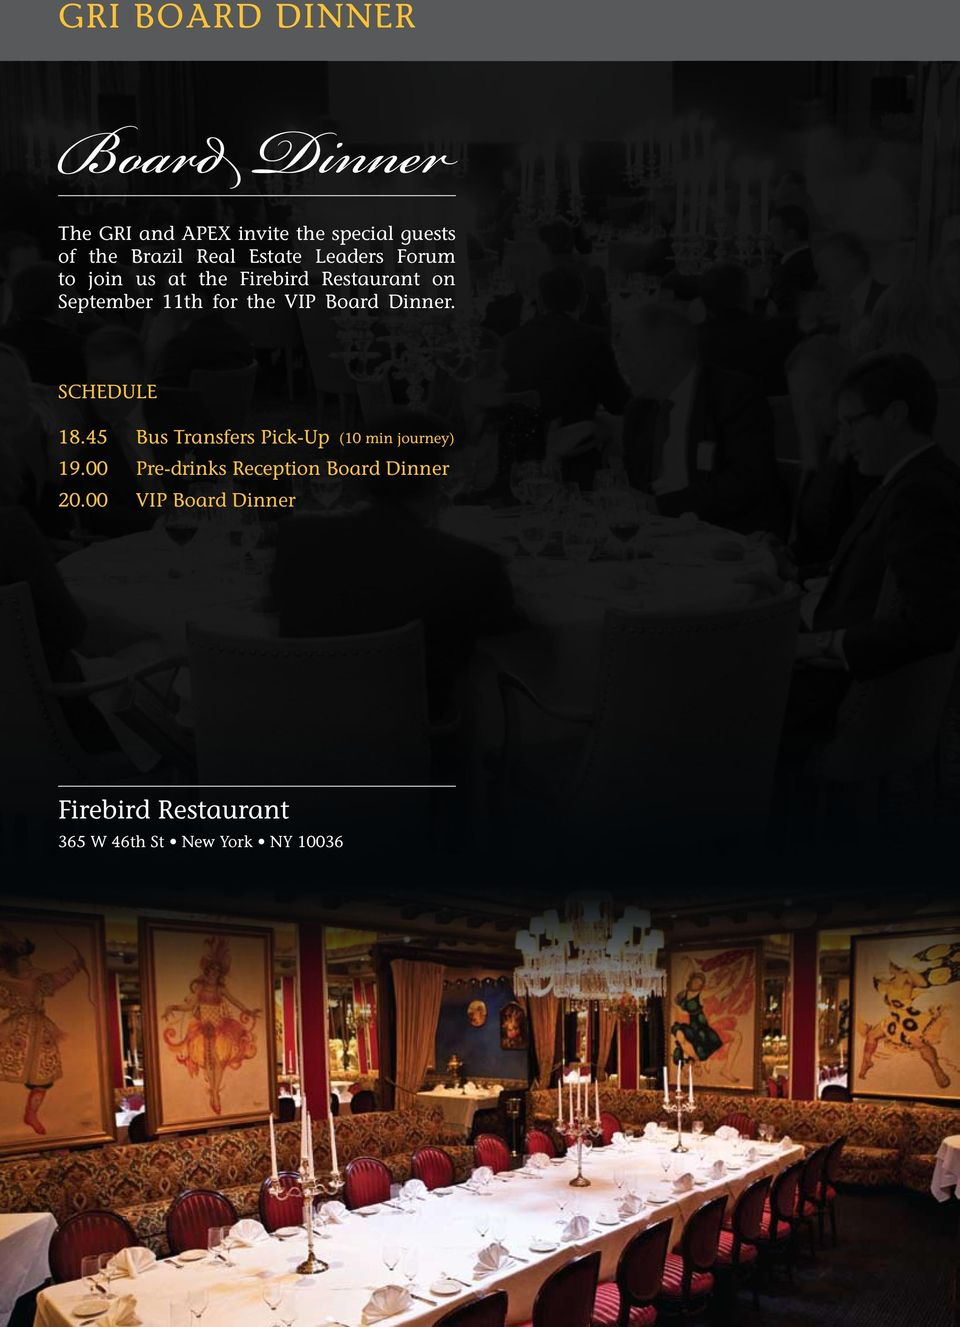 VIP Board Dinner. Schedule 18.45 Bus Transfers Pick-Up (10 min journey) 19.